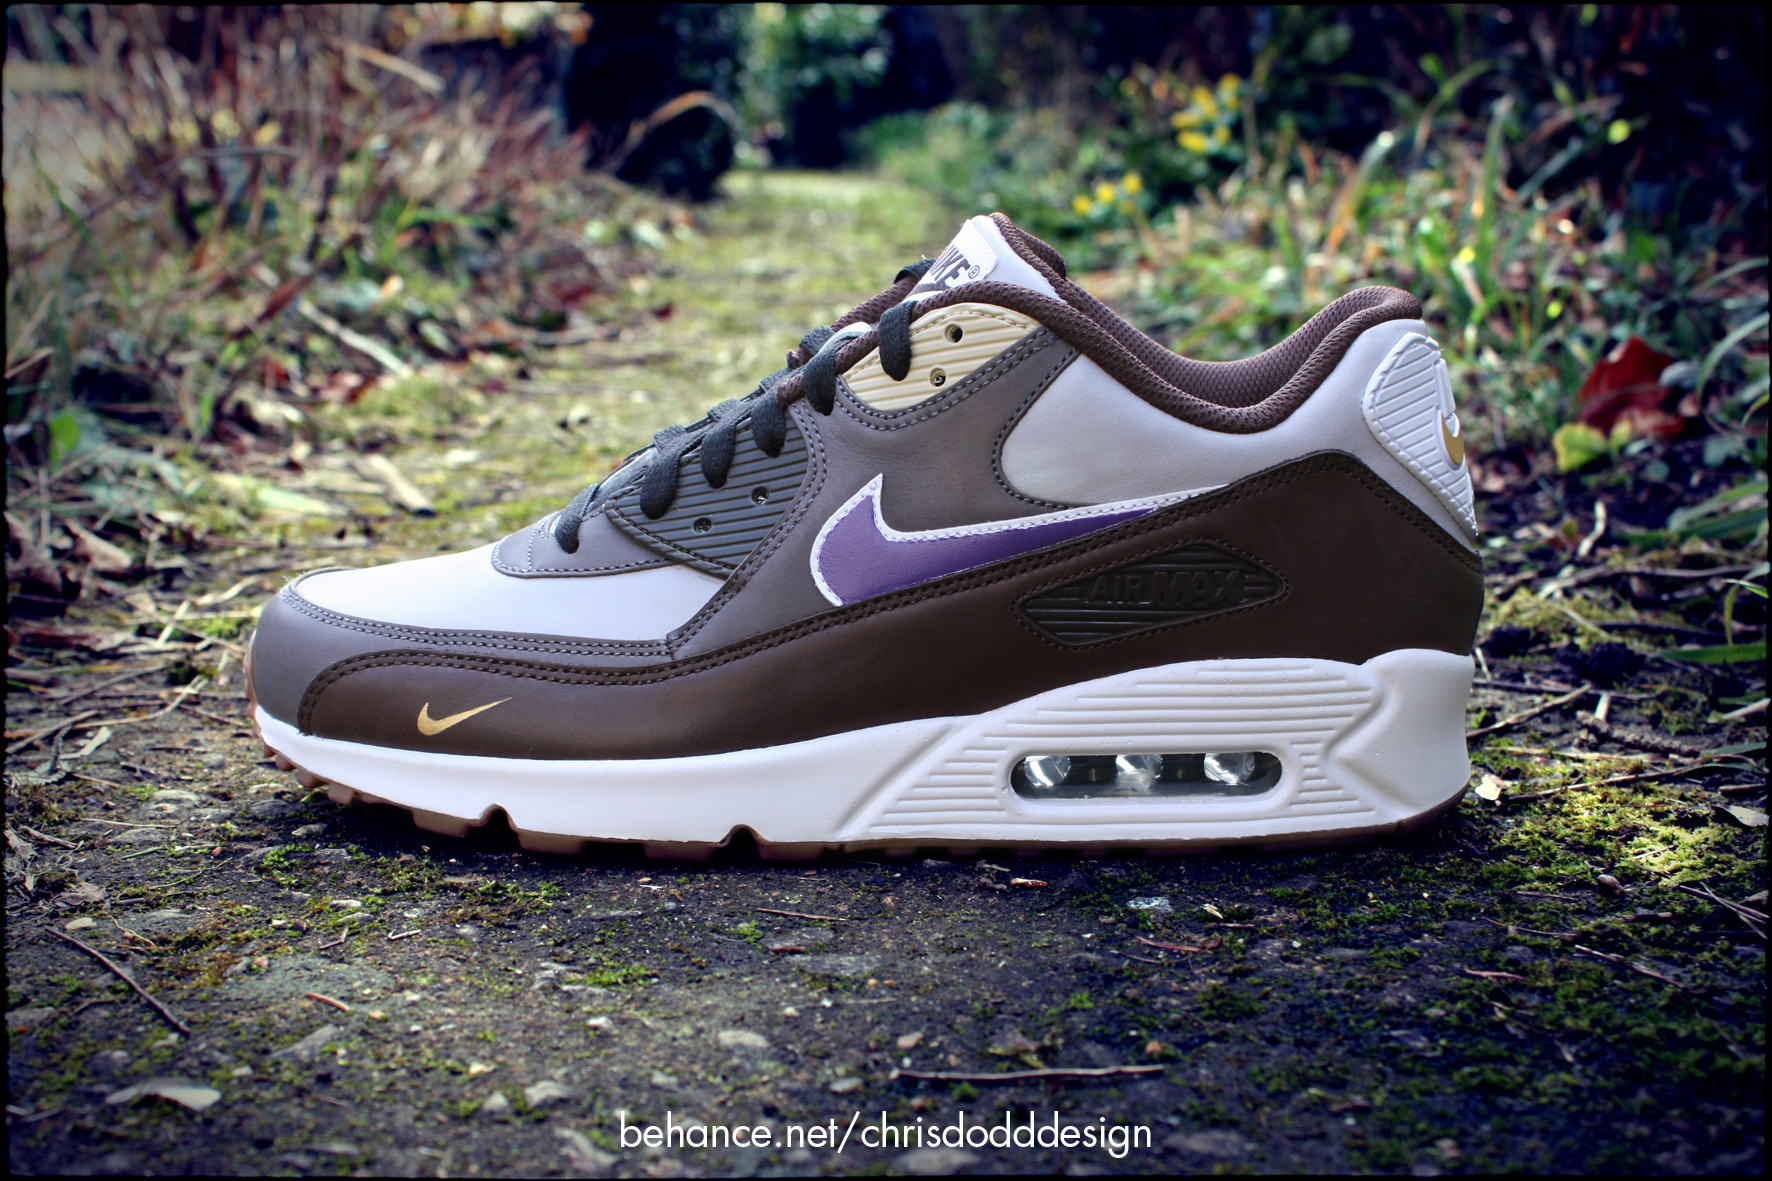 661b1fc9f0413 Atmos x Nike Air Max 90 'Viotech' Custom on Behance